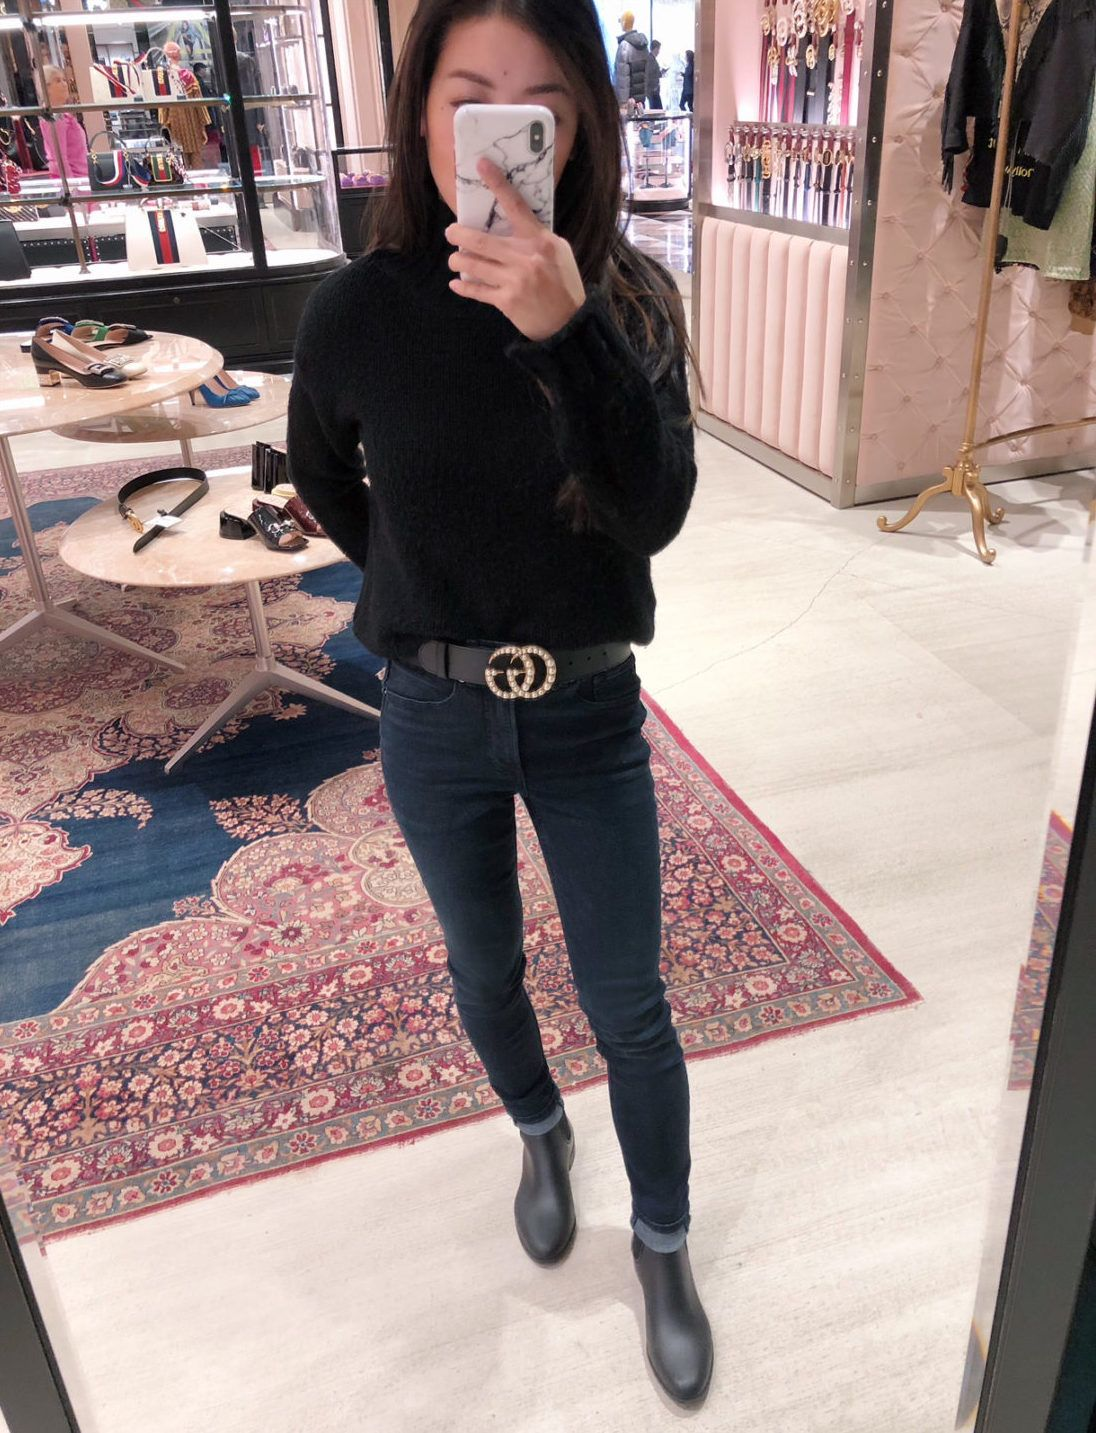 902985dec52 Gucci Belt Review + Guide  How to Choose Size and Leather